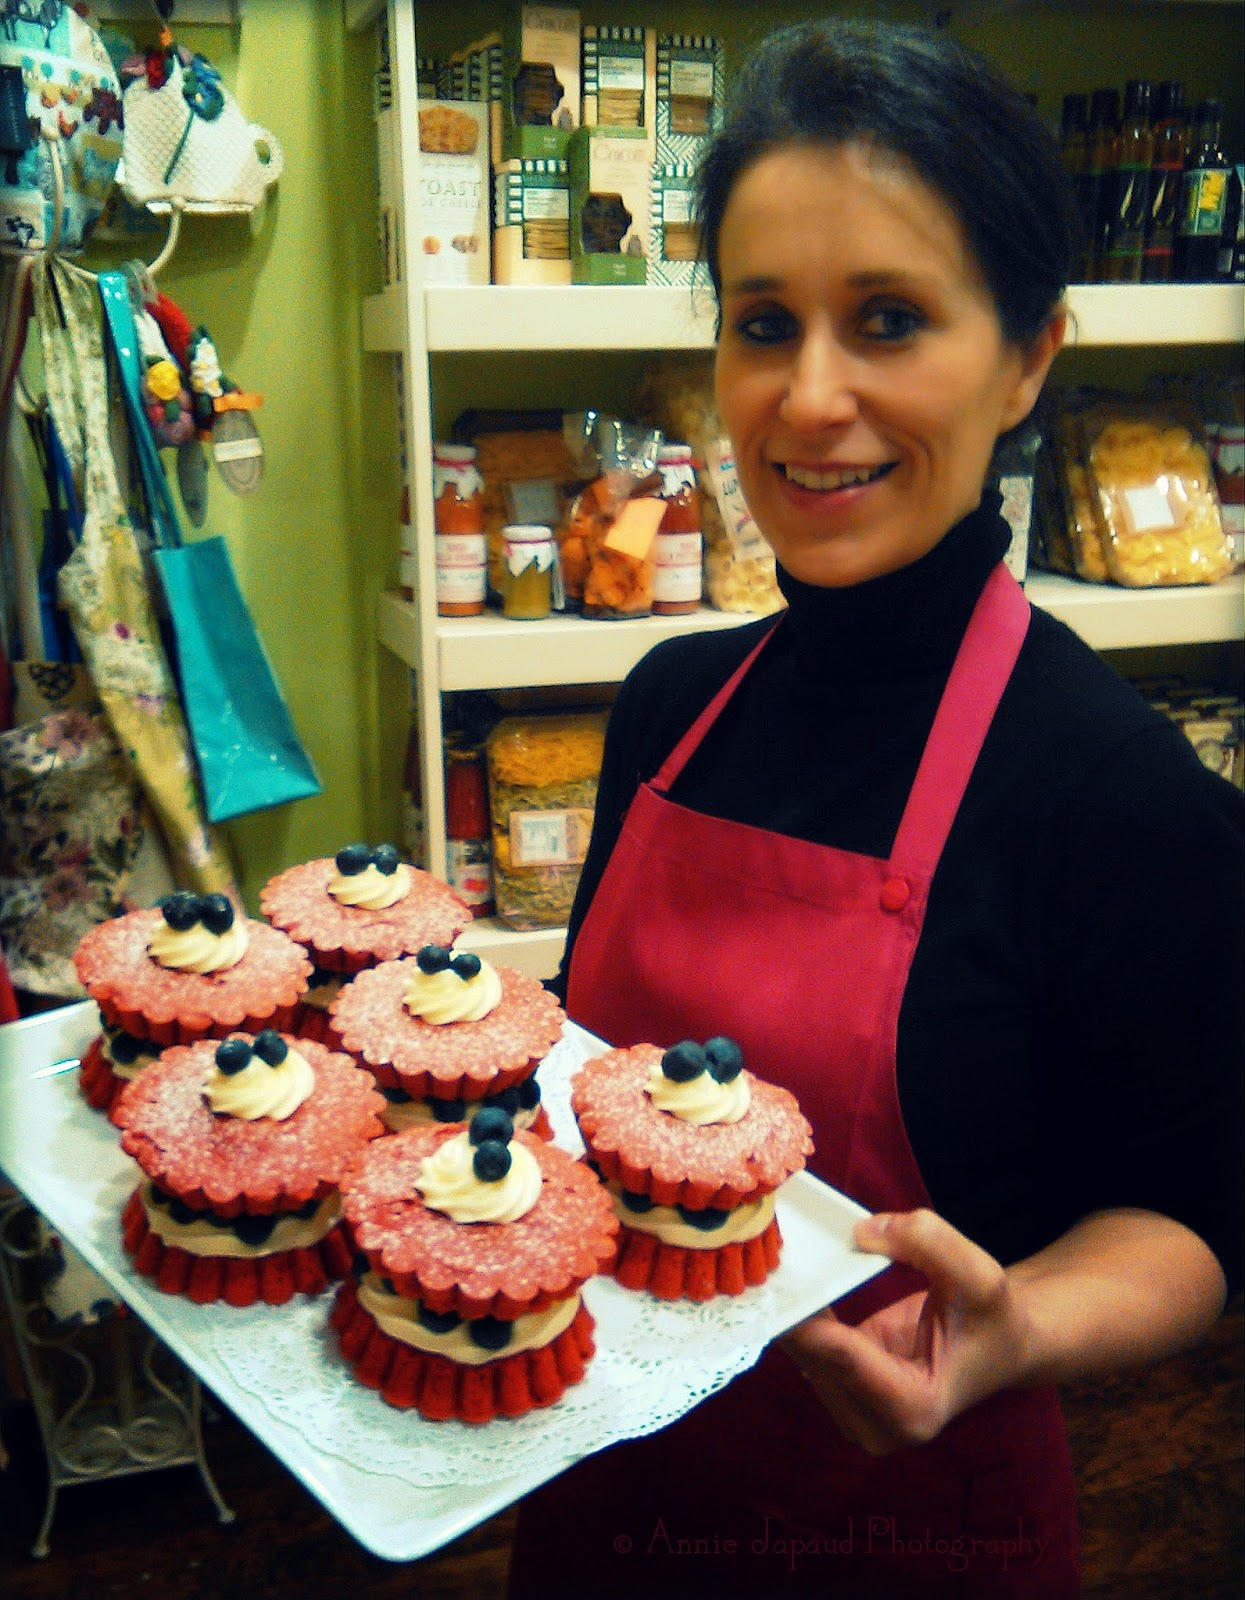 red velvet cakes from The White gables restaurant, Moycullen, Ireland